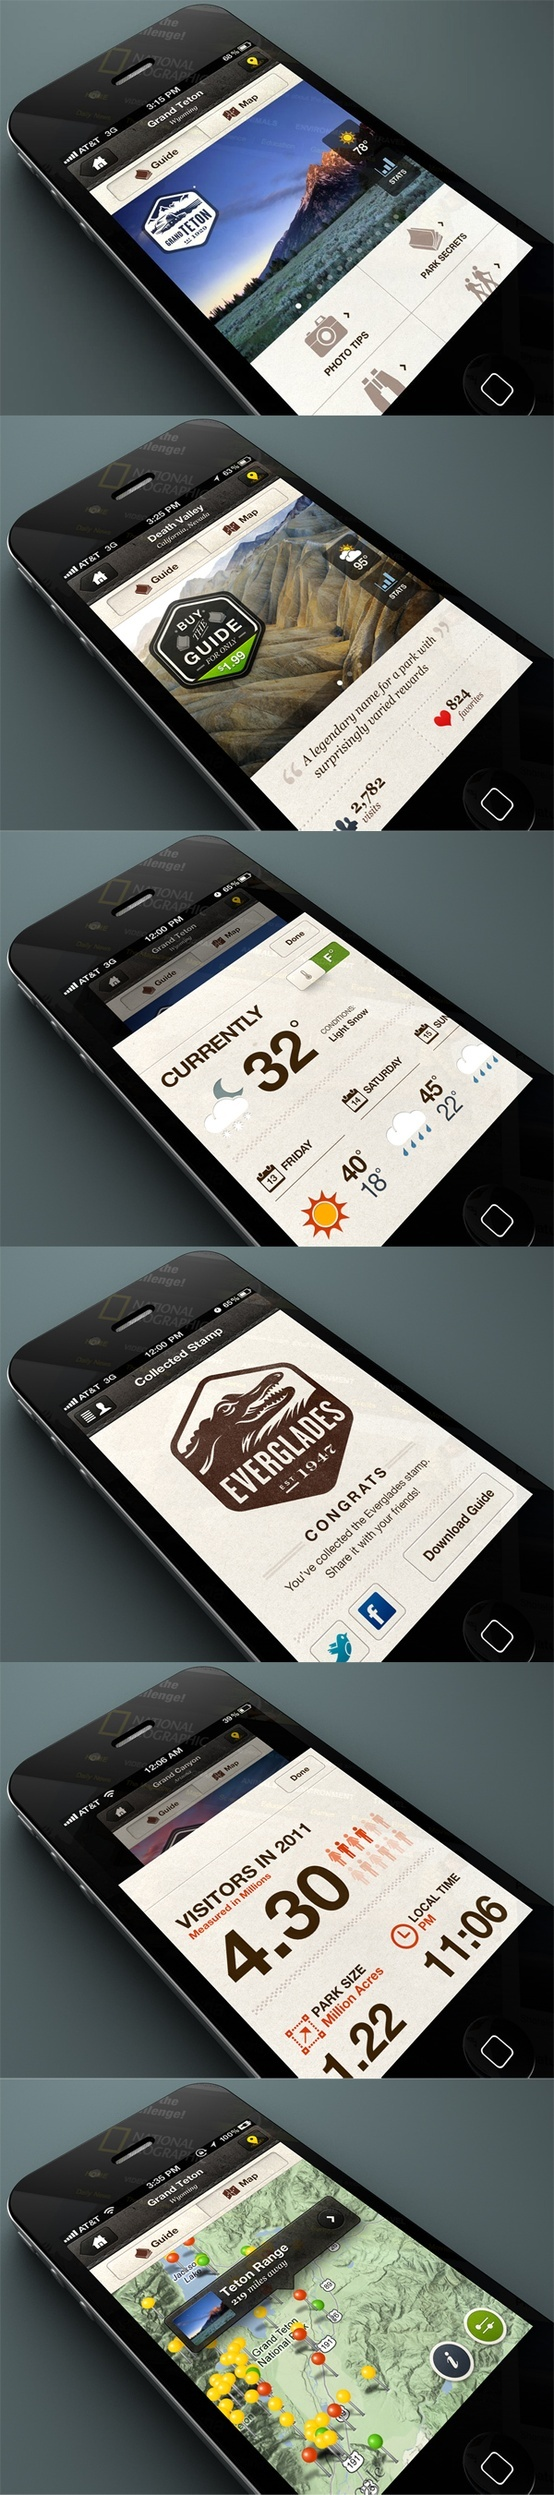 Interface mobile / National Parks by National Geographic